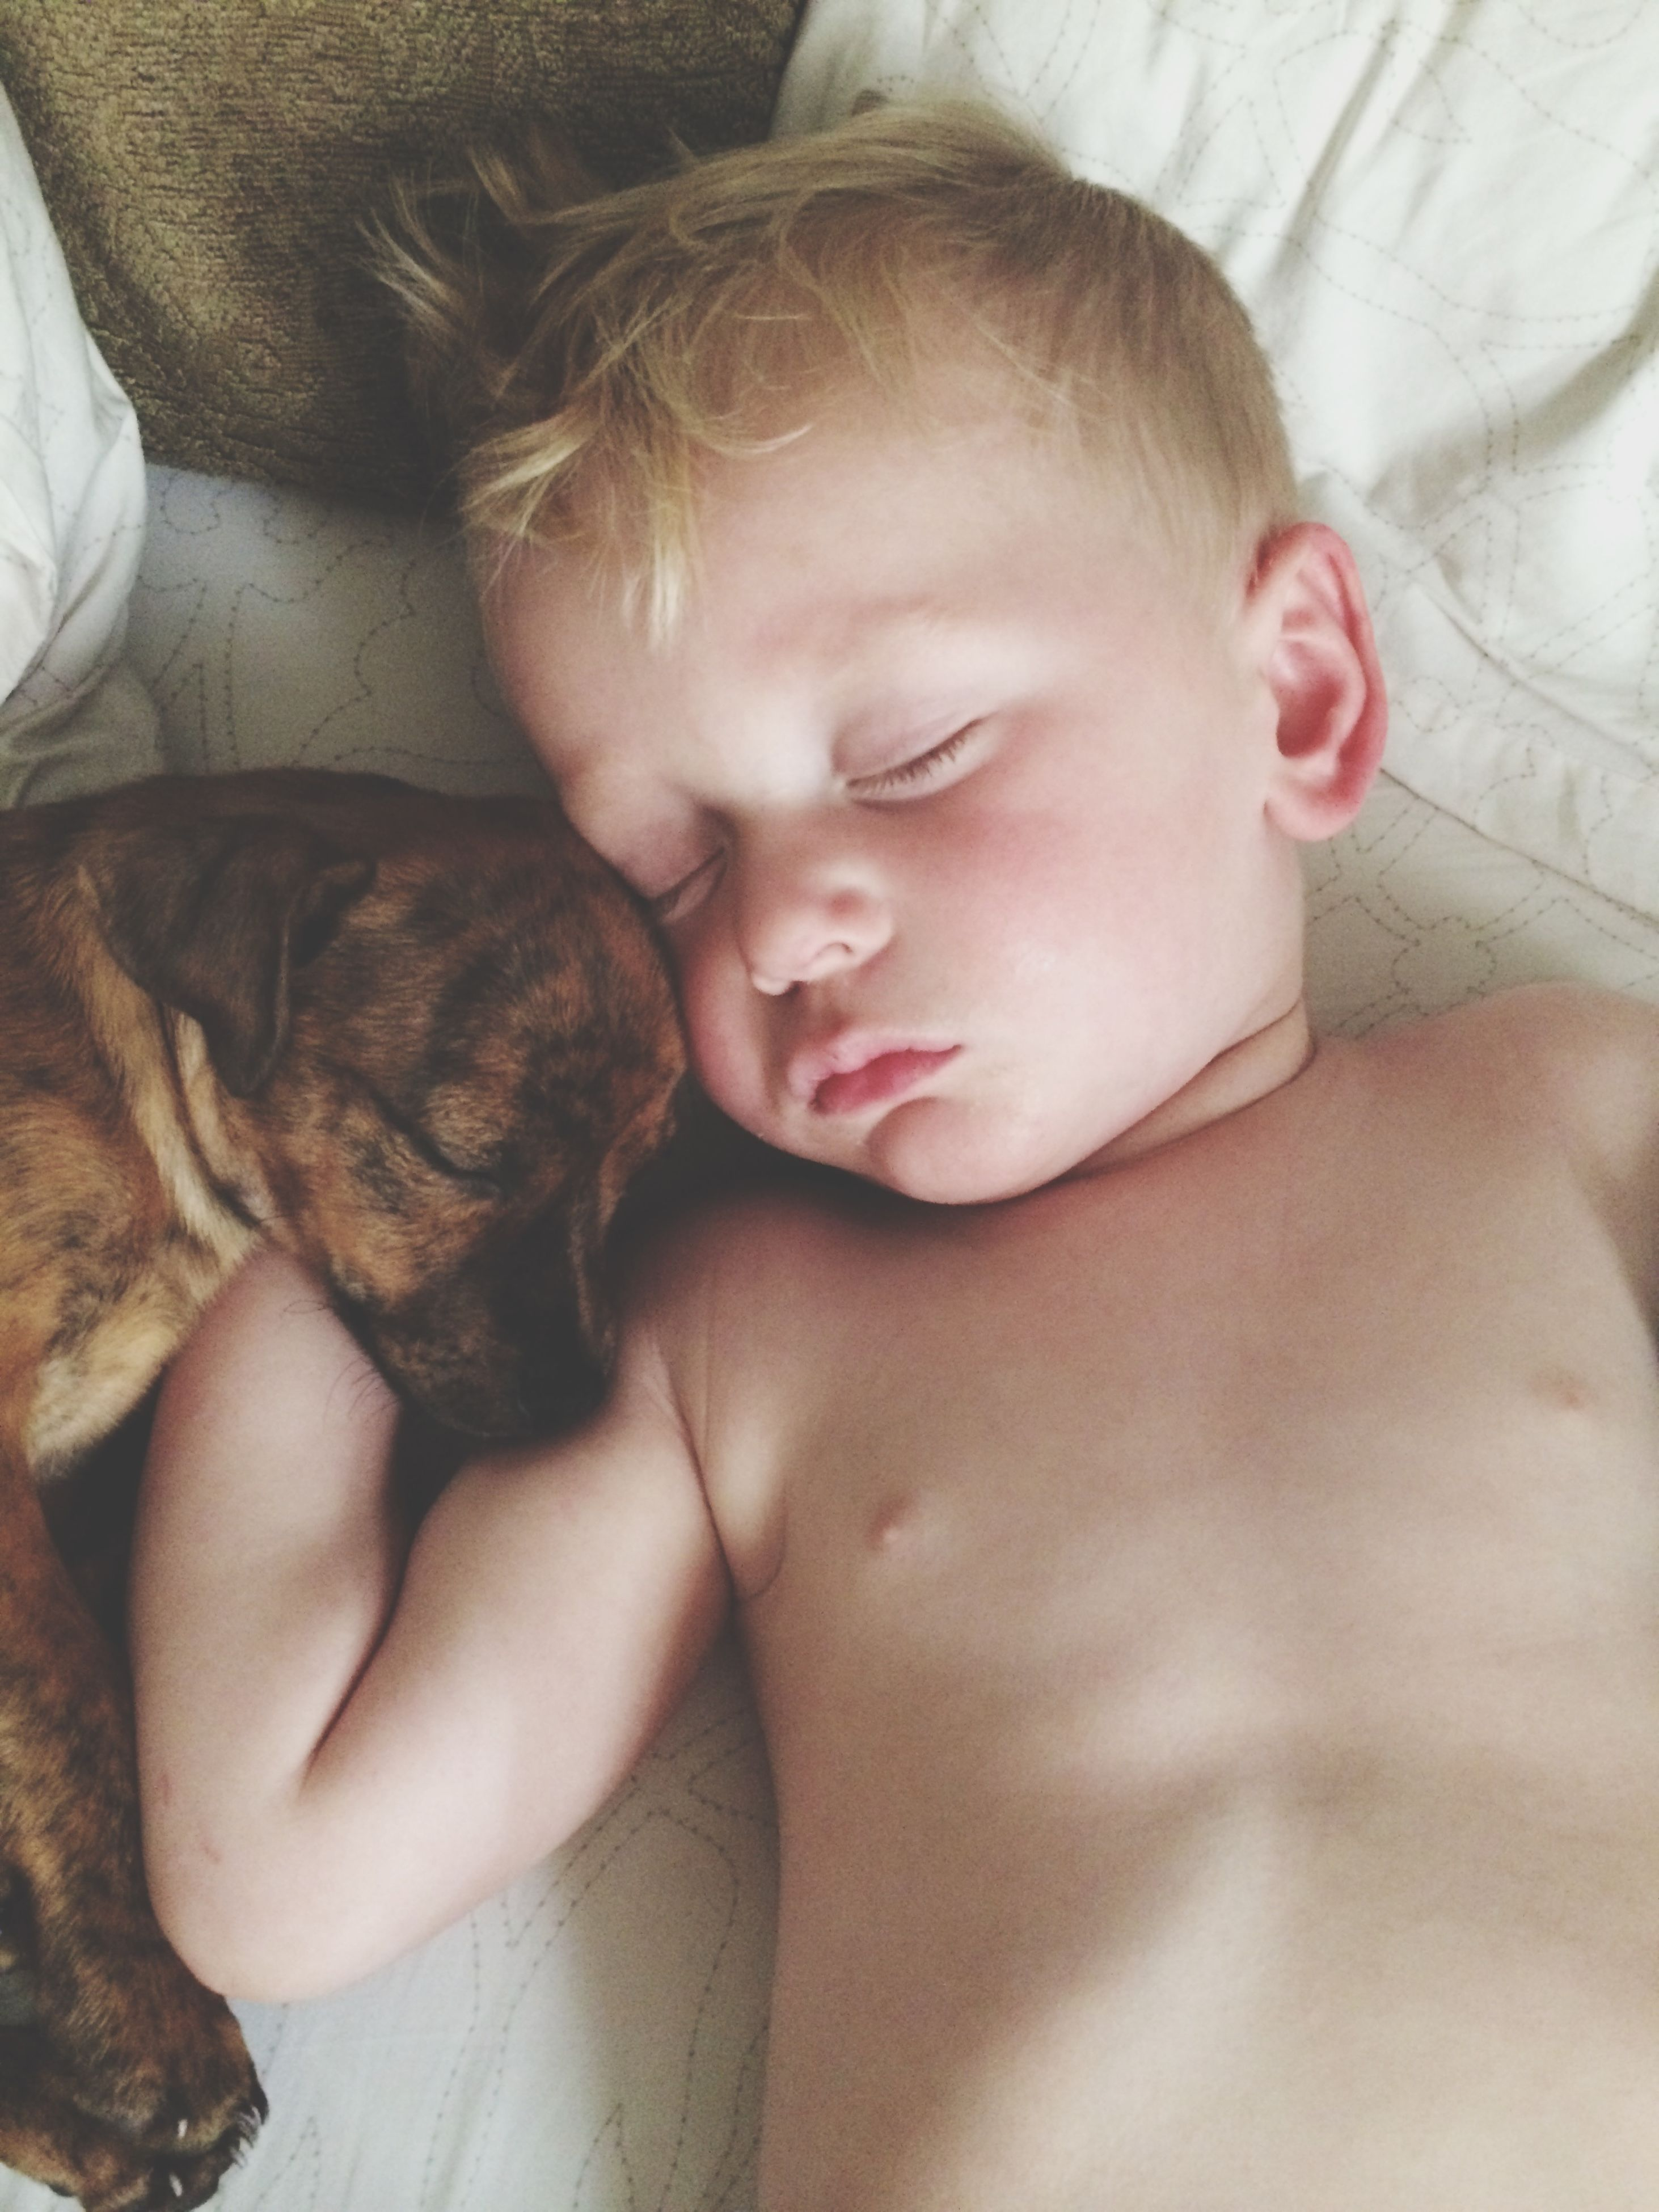 indoors, relaxation, sleeping, lying down, childhood, bed, pets, person, cute, innocence, resting, home interior, domestic animals, baby, animal themes, high angle view, one animal, eyes closed